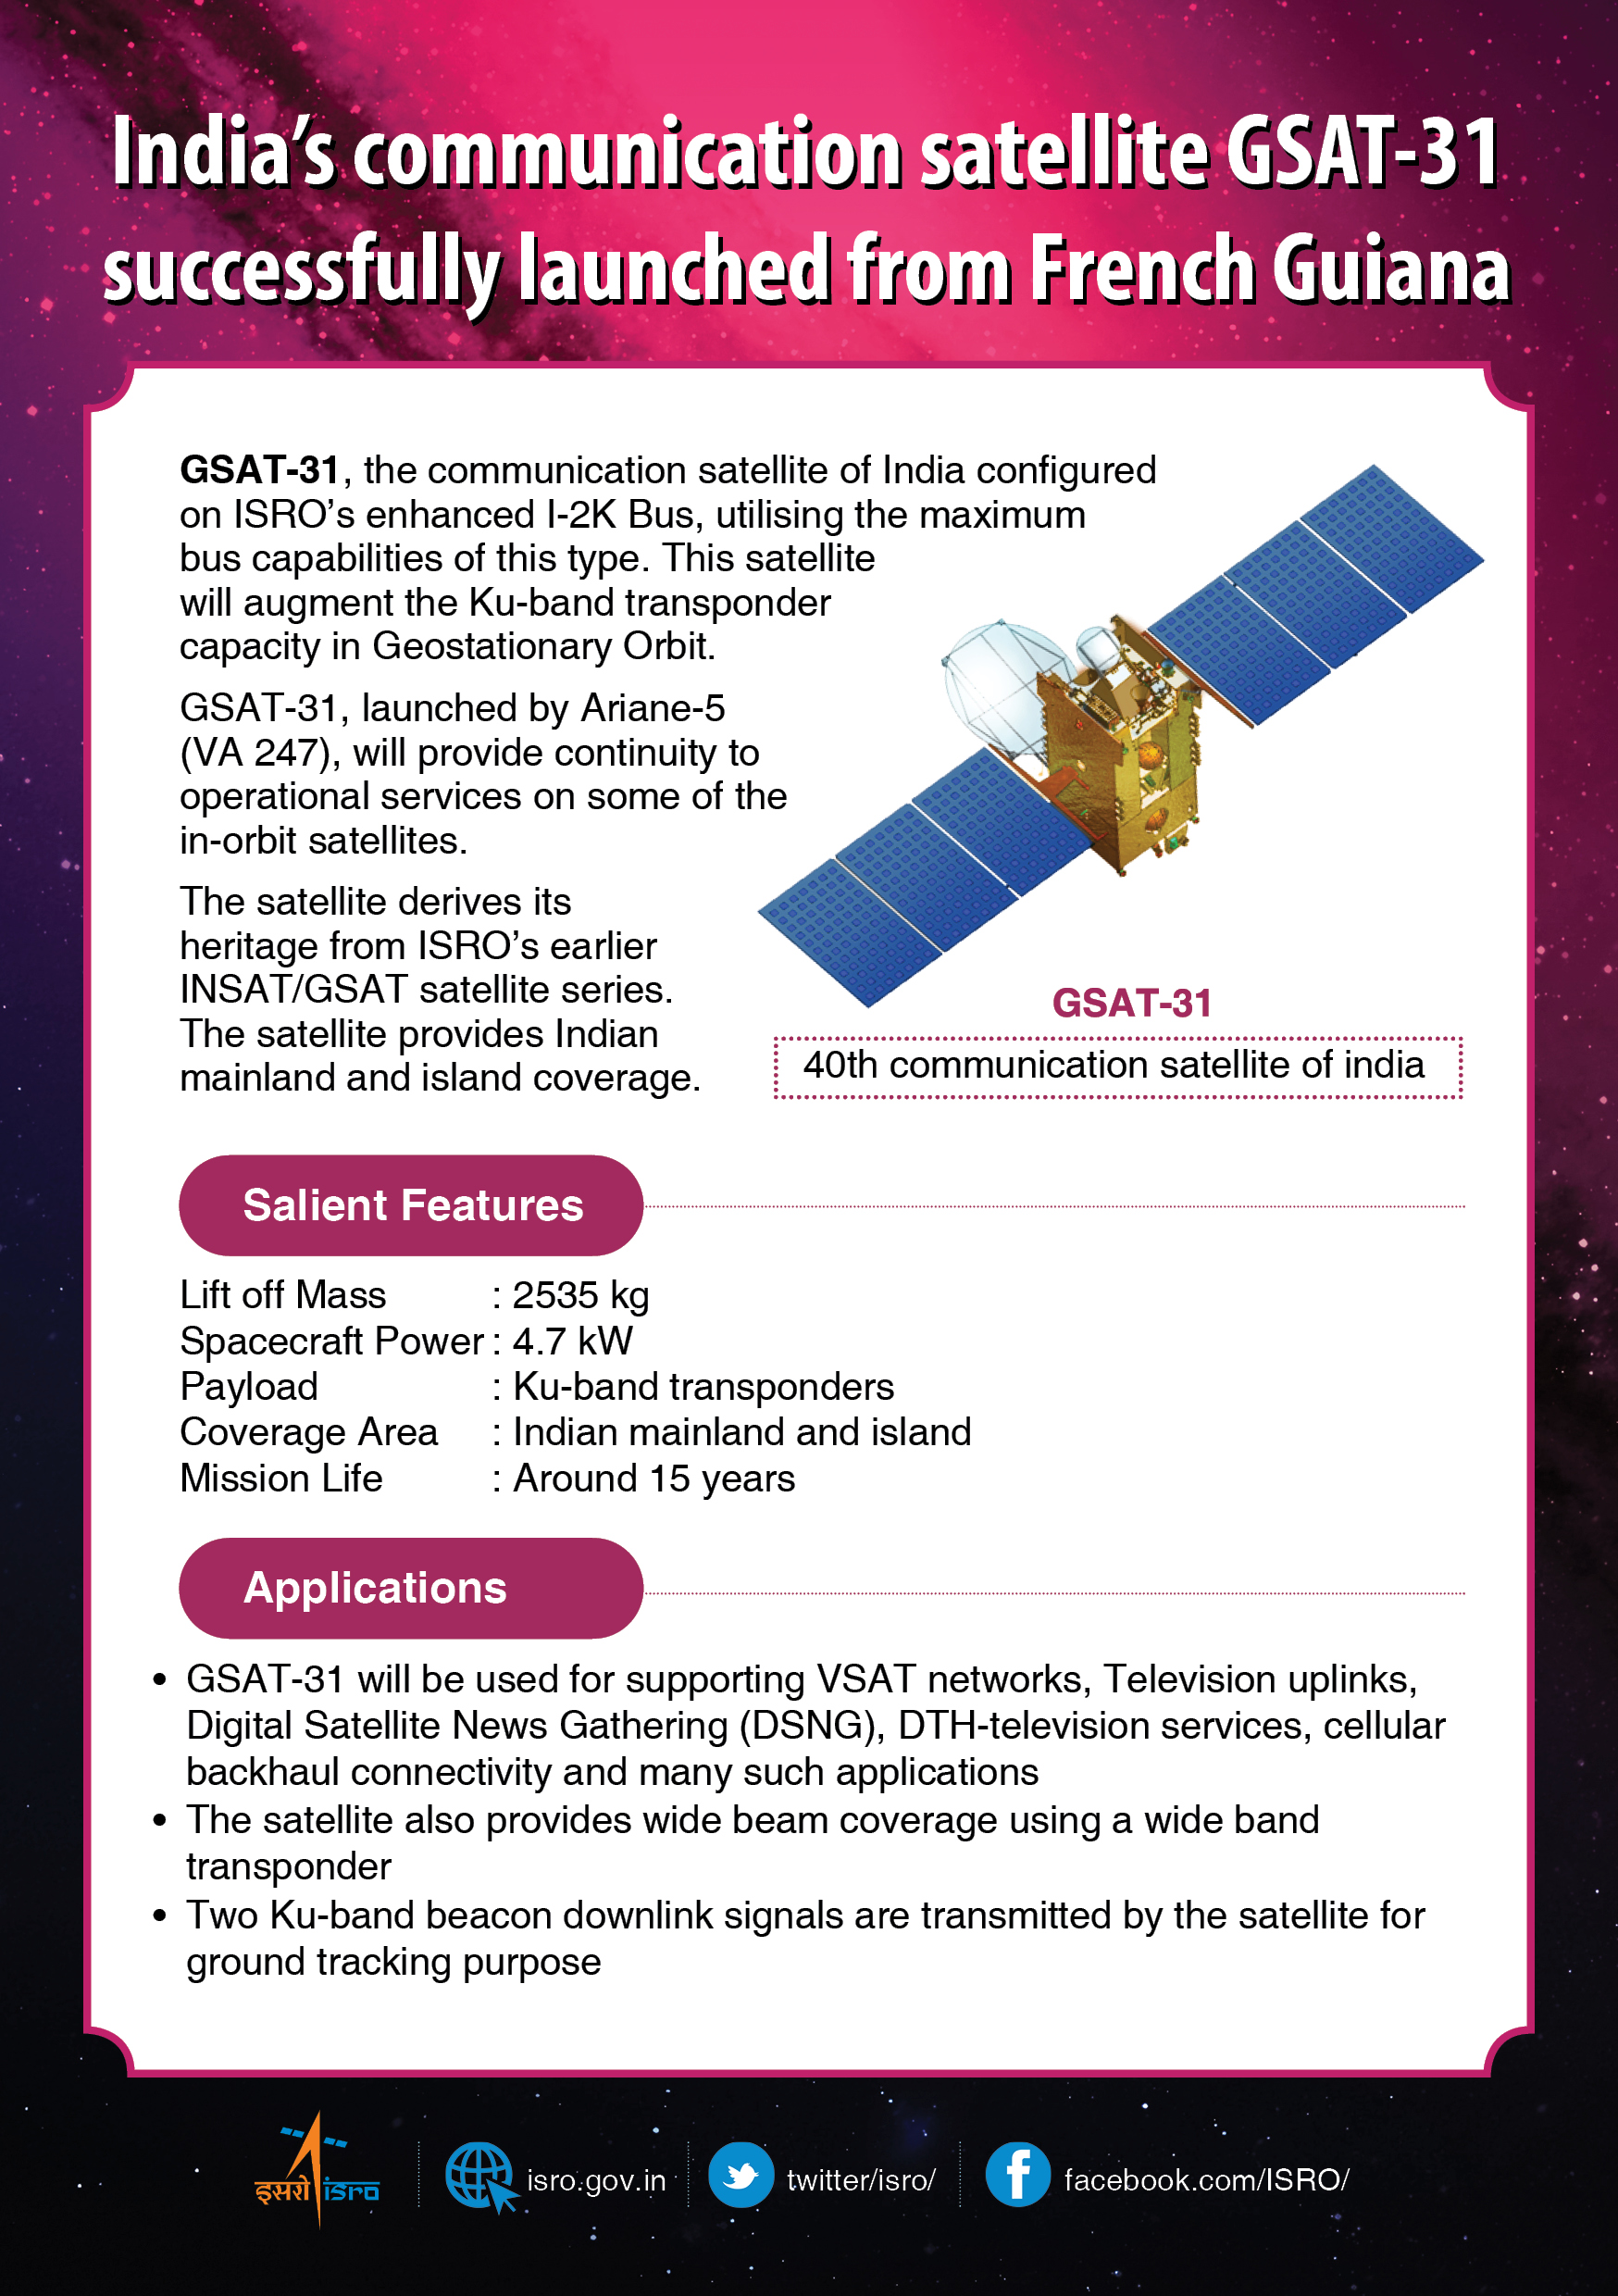 India's communication satellite GSAT-31 launched